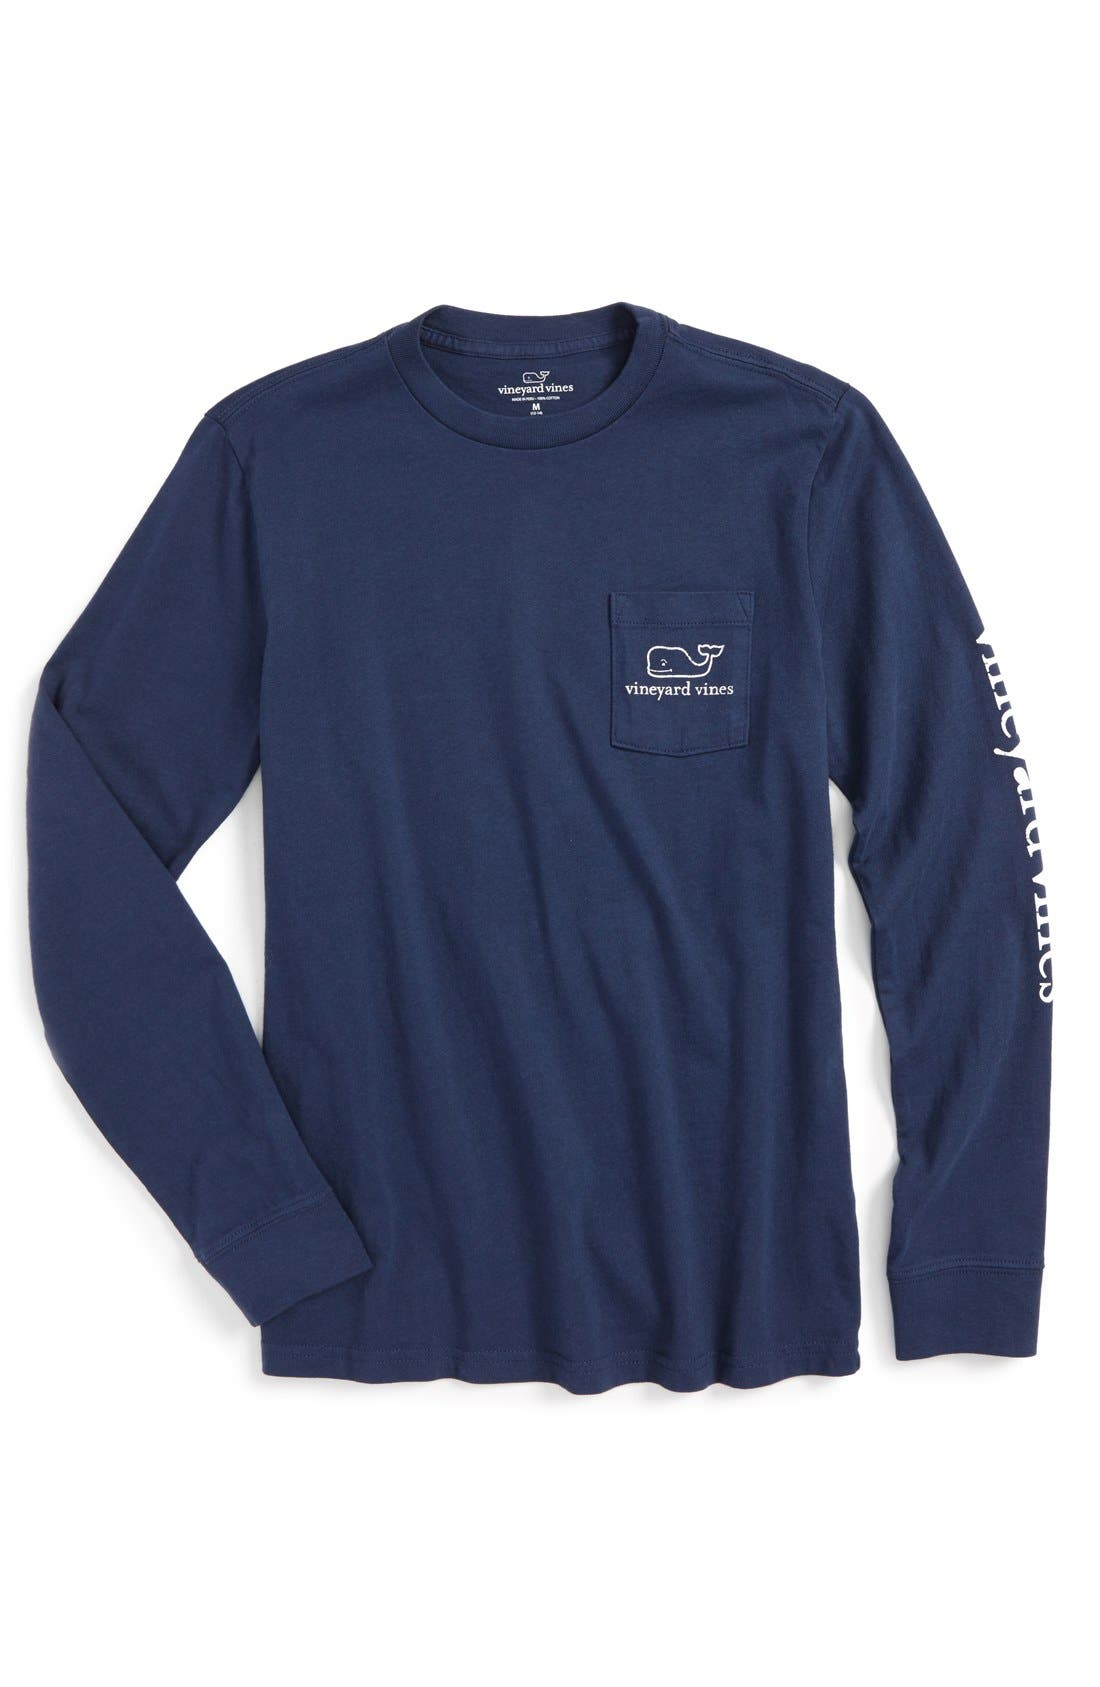 Main Image - vineyard vines Vintage Whale Graphic Long Sleeve T-Shirt (Big Boys)